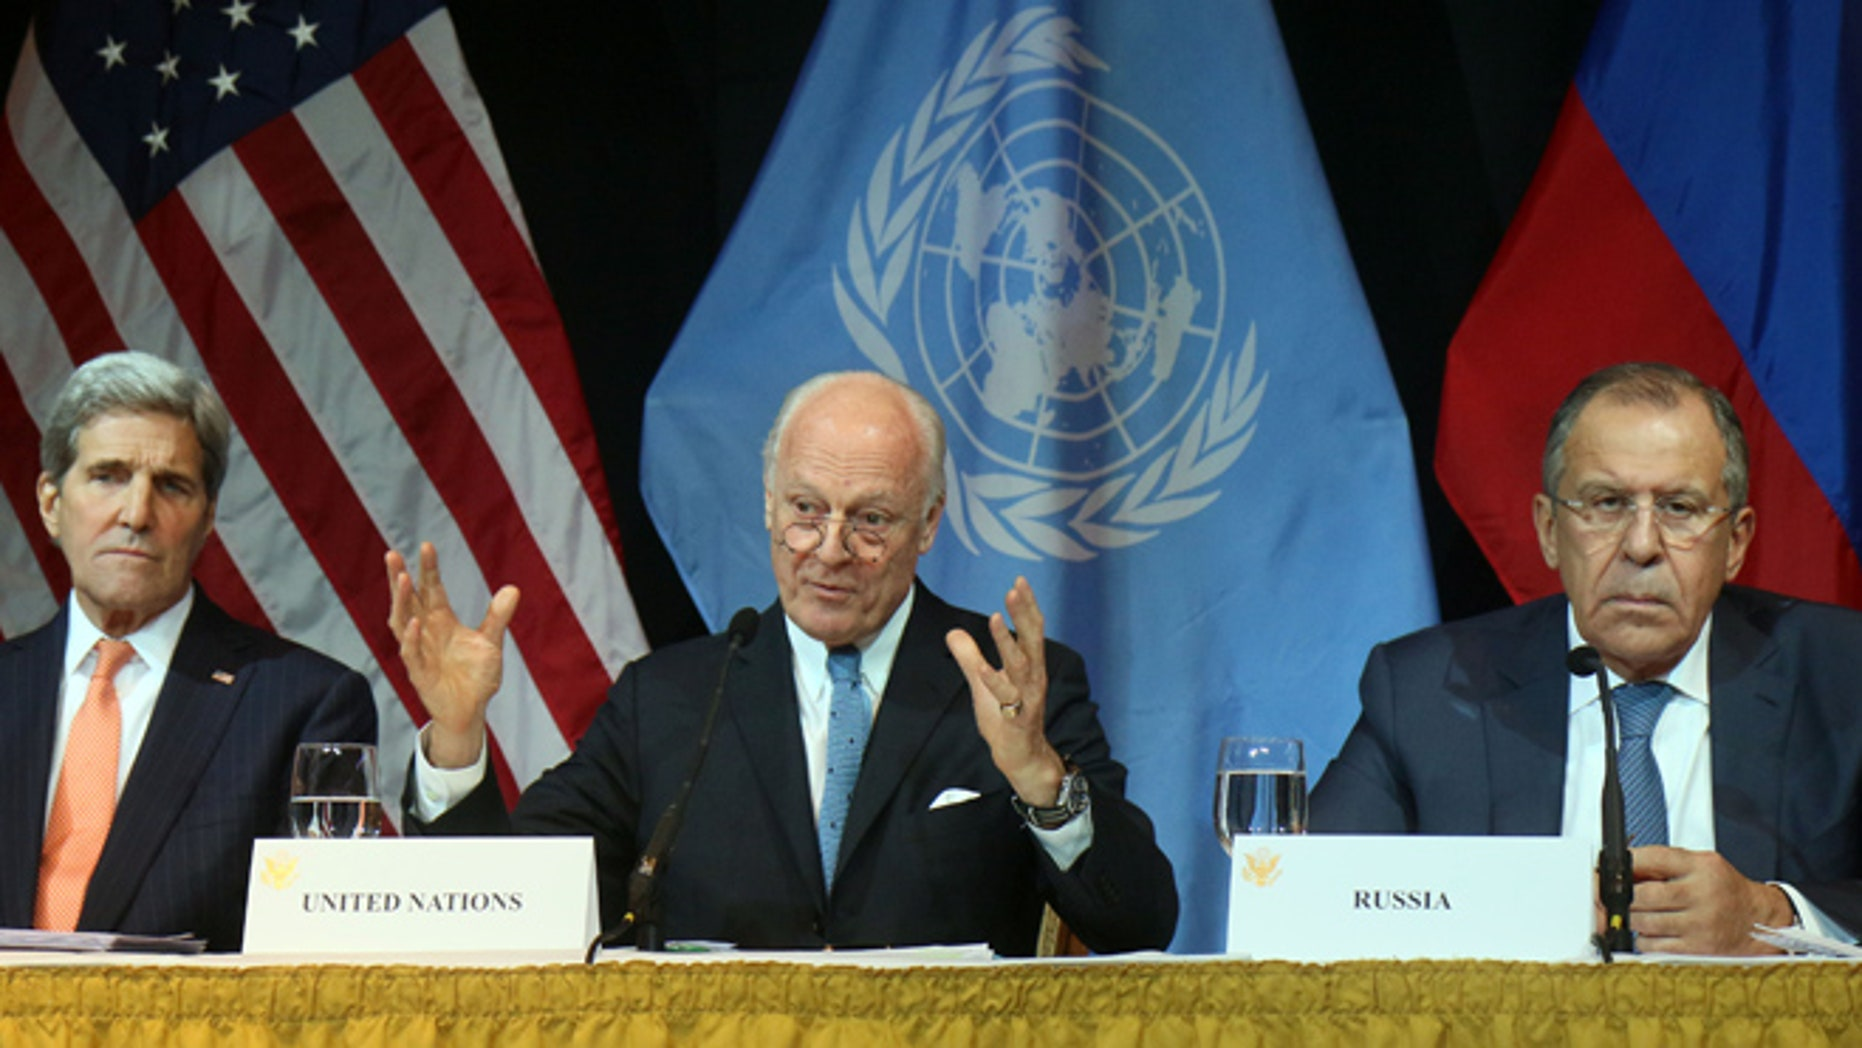 Nov. 14, 2015: Secretary of State John Kerry, UN Special Envoy for Syria Staffan de Mistura  and Russian Foreign Minister Sergey Lavrov, in Vienna.